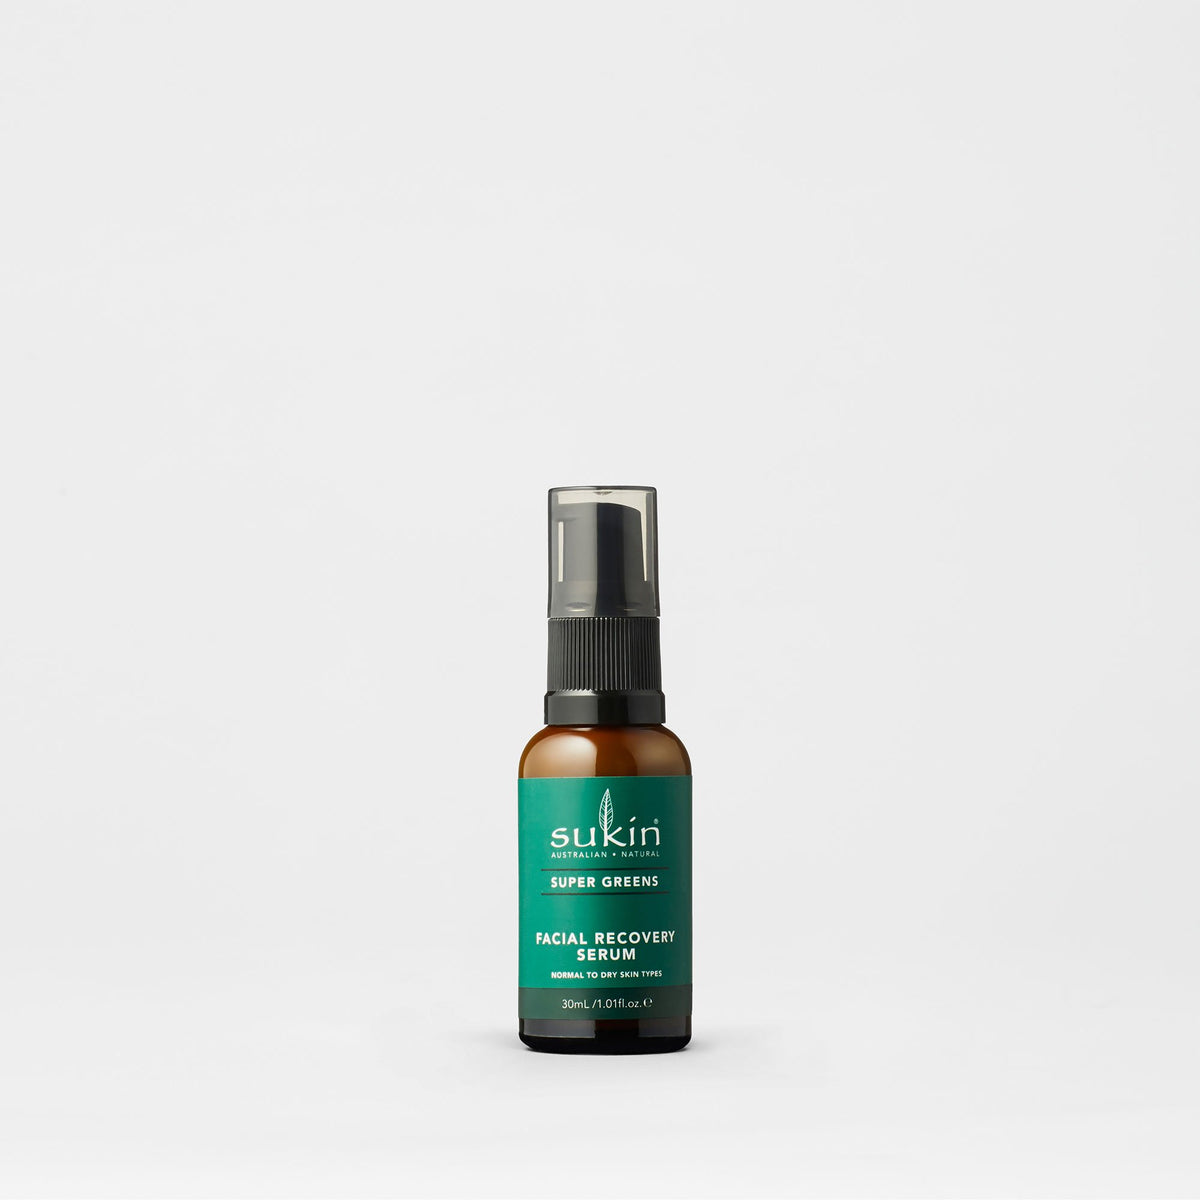 Facial Recovery Serum | Super Greens - Sukin Naturals USA